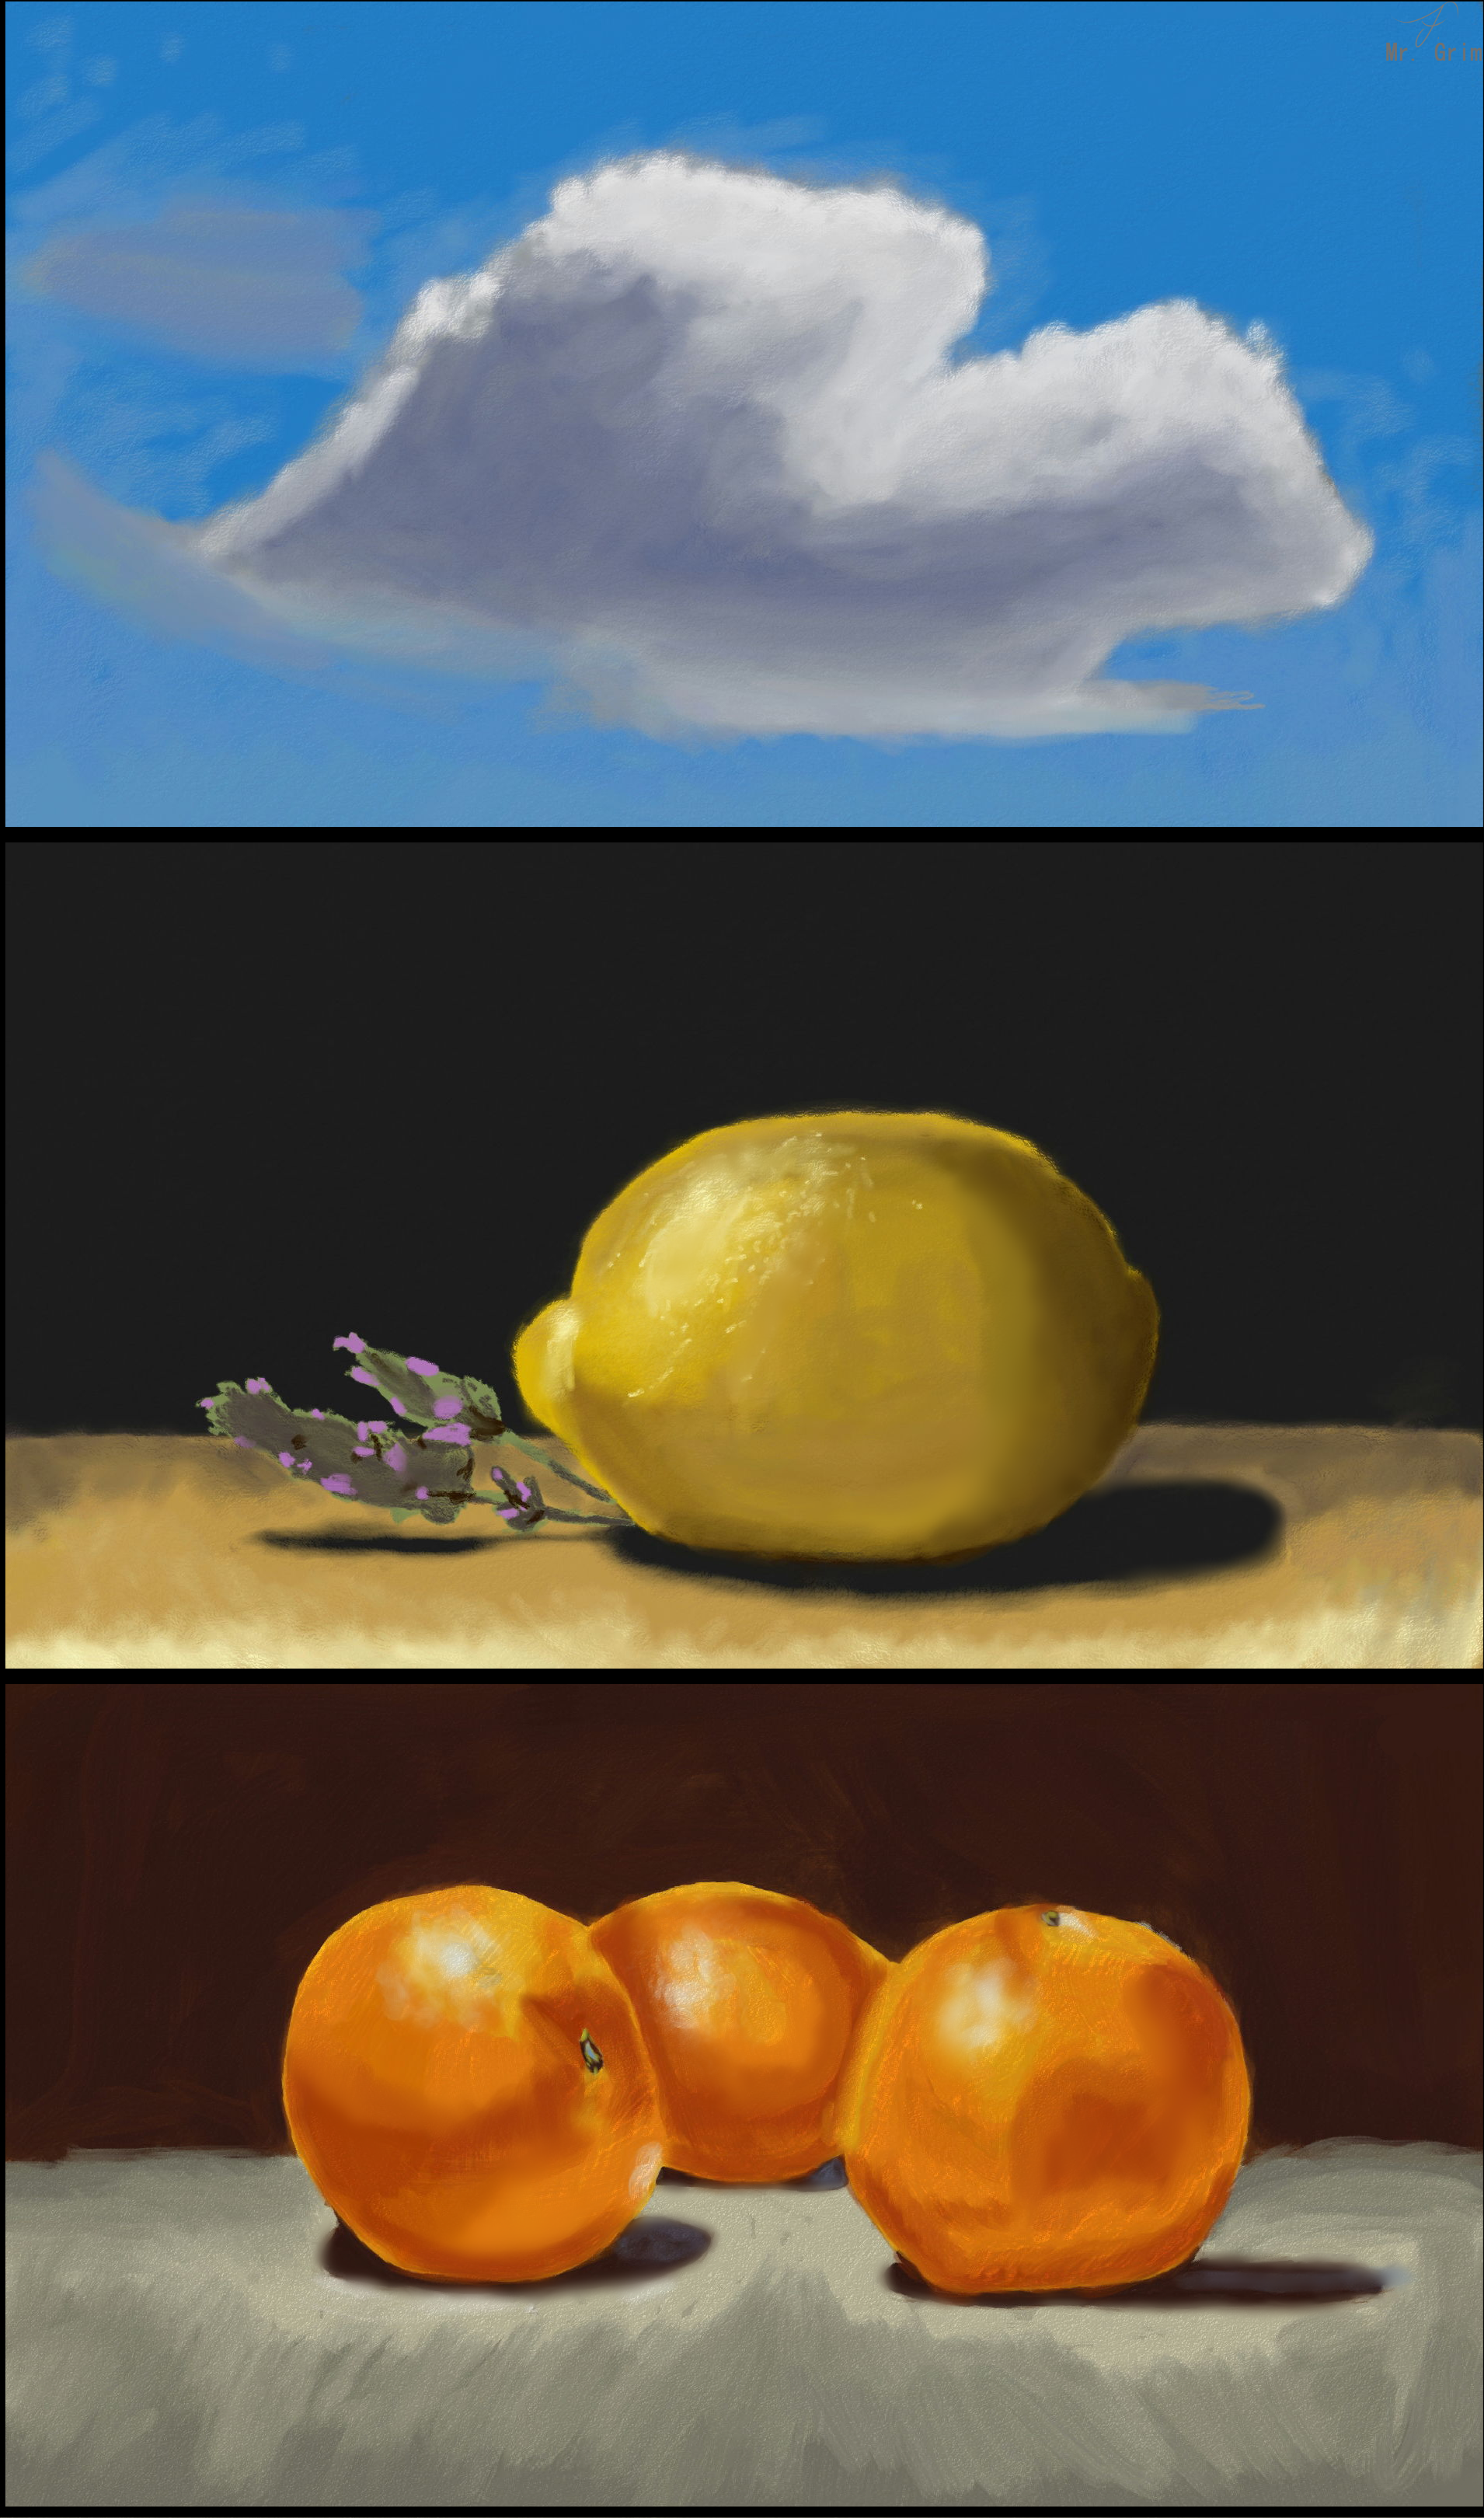 More Still Life Practices